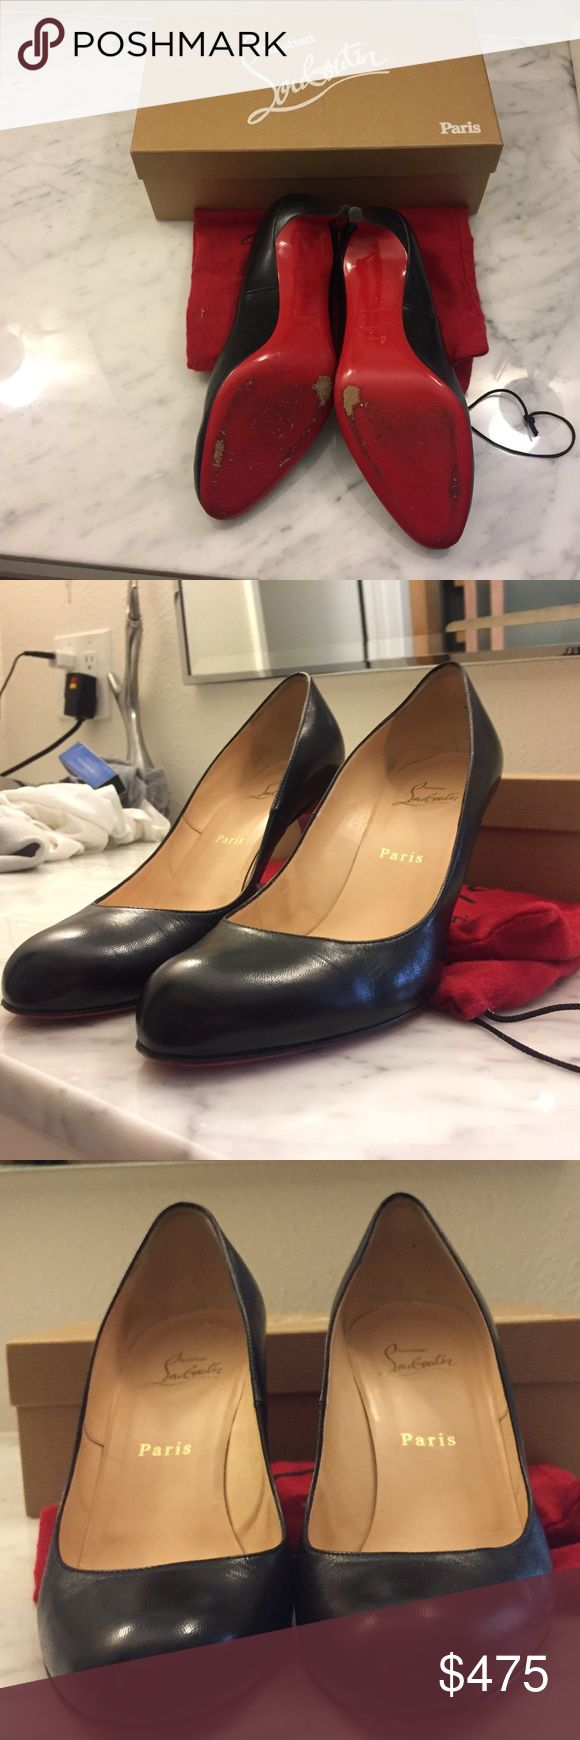 """Louboutin """"simple"""" round toe black pump. Size 9 A pair of classic black Louboutin pumps, Napa Leather in black, 2.8 """" heel. Worn twice. Excellent condition. Size 9. With box and shoe bag. Christian Louboutin Shoes Heels"""